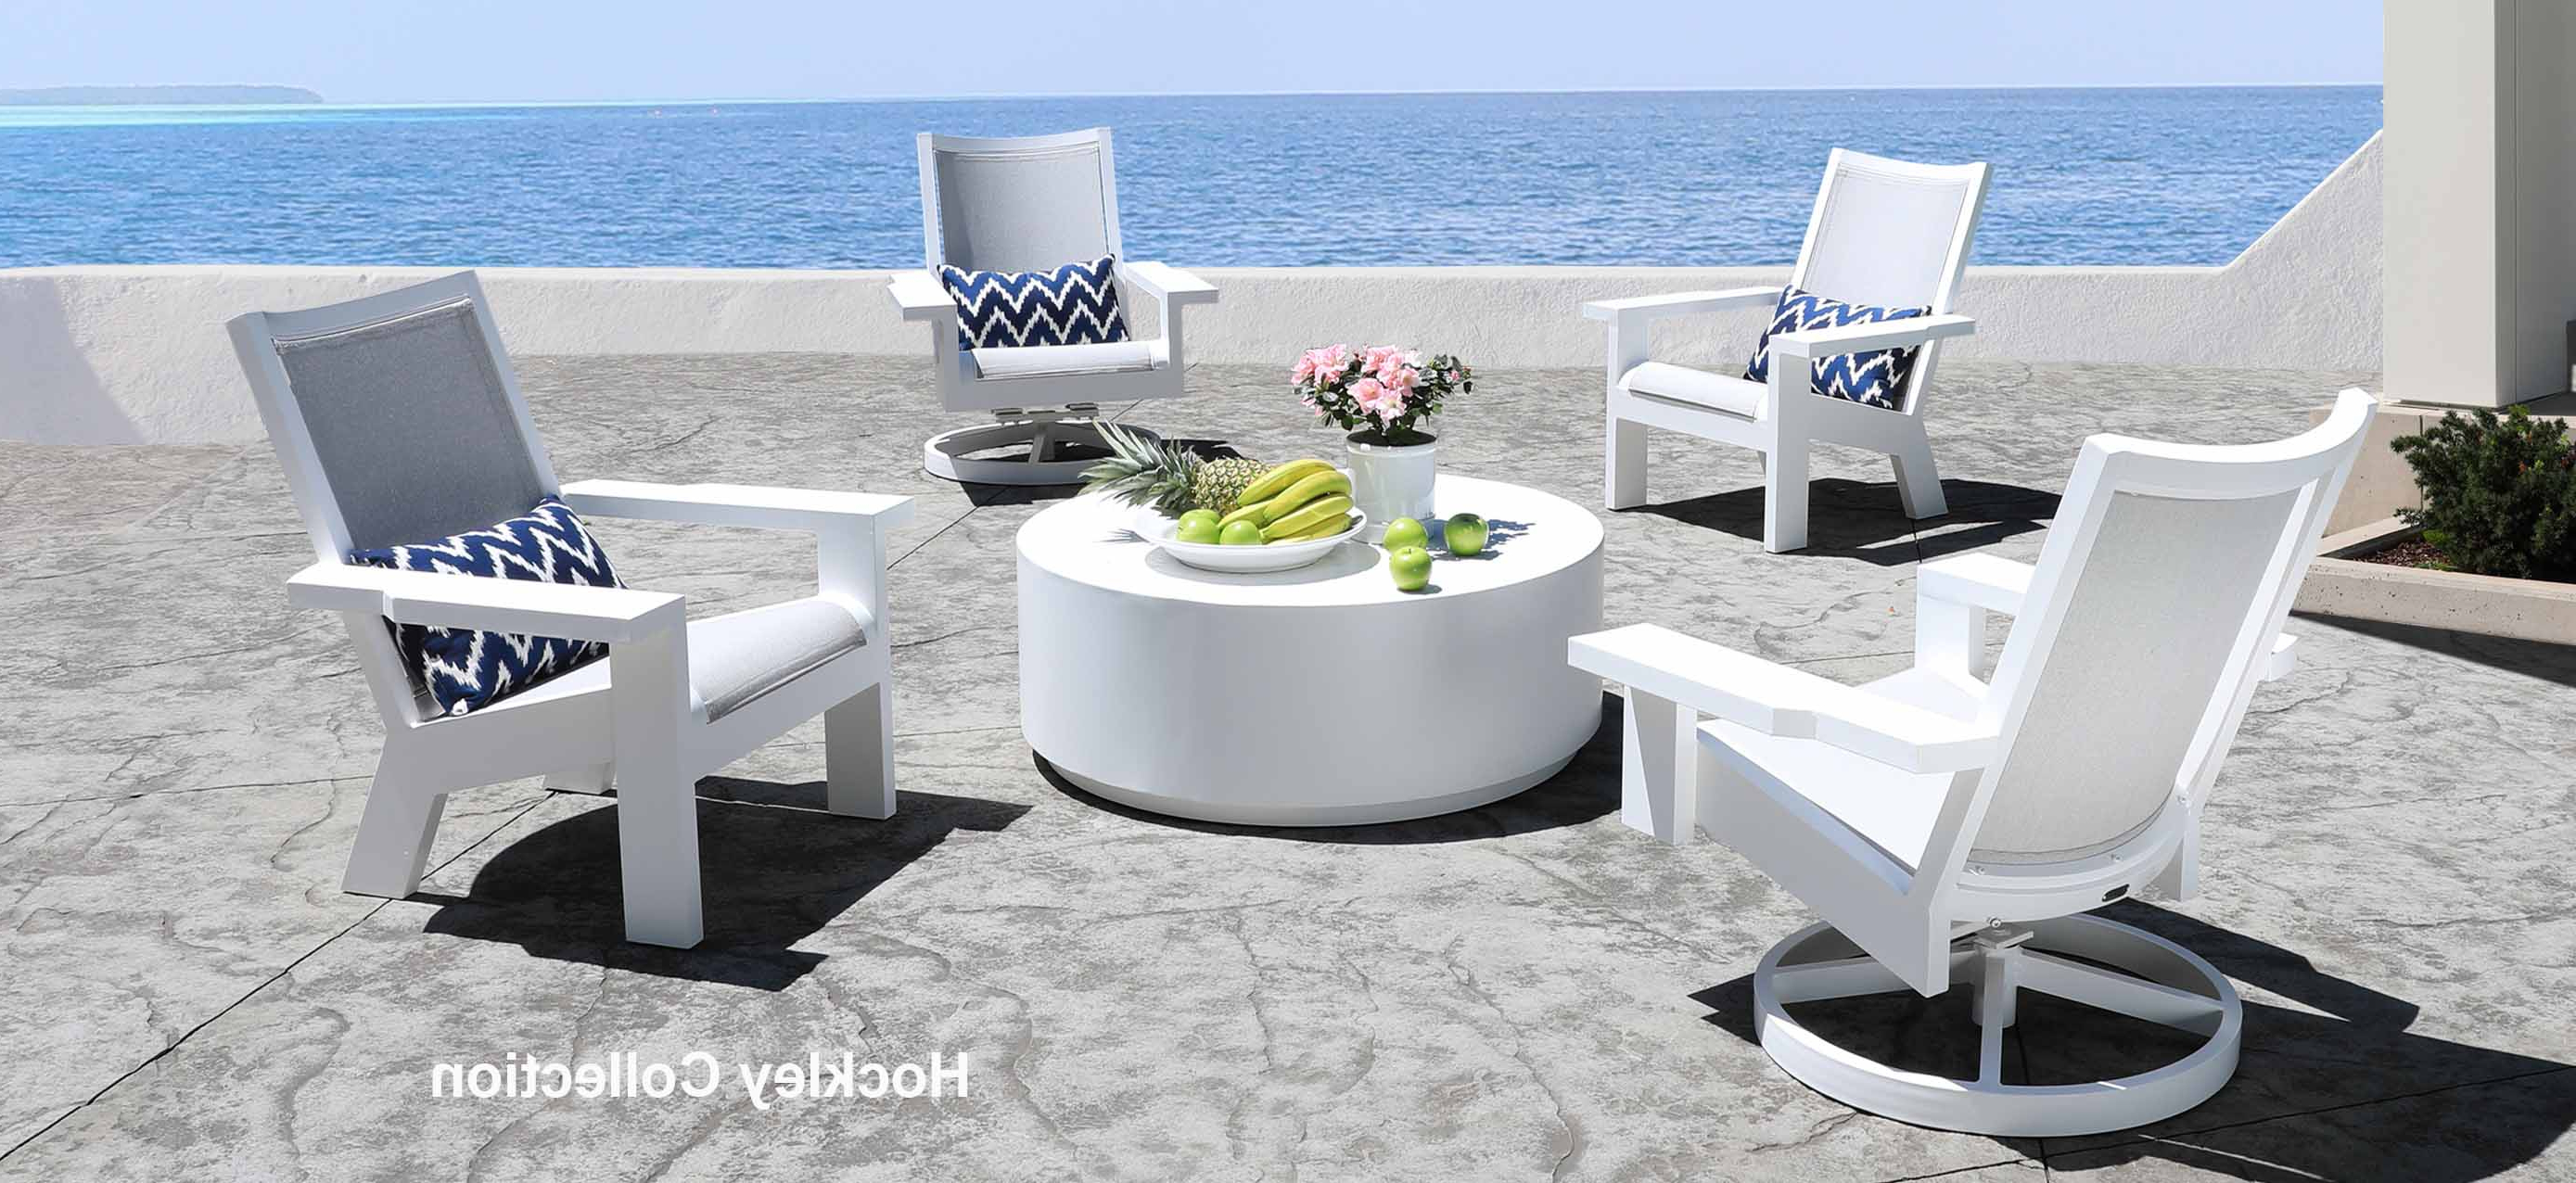 Shop Patio Furniture At Cabanacoast® With Current Extra Wide Outdoor Lounge Chairs (View 19 of 25)